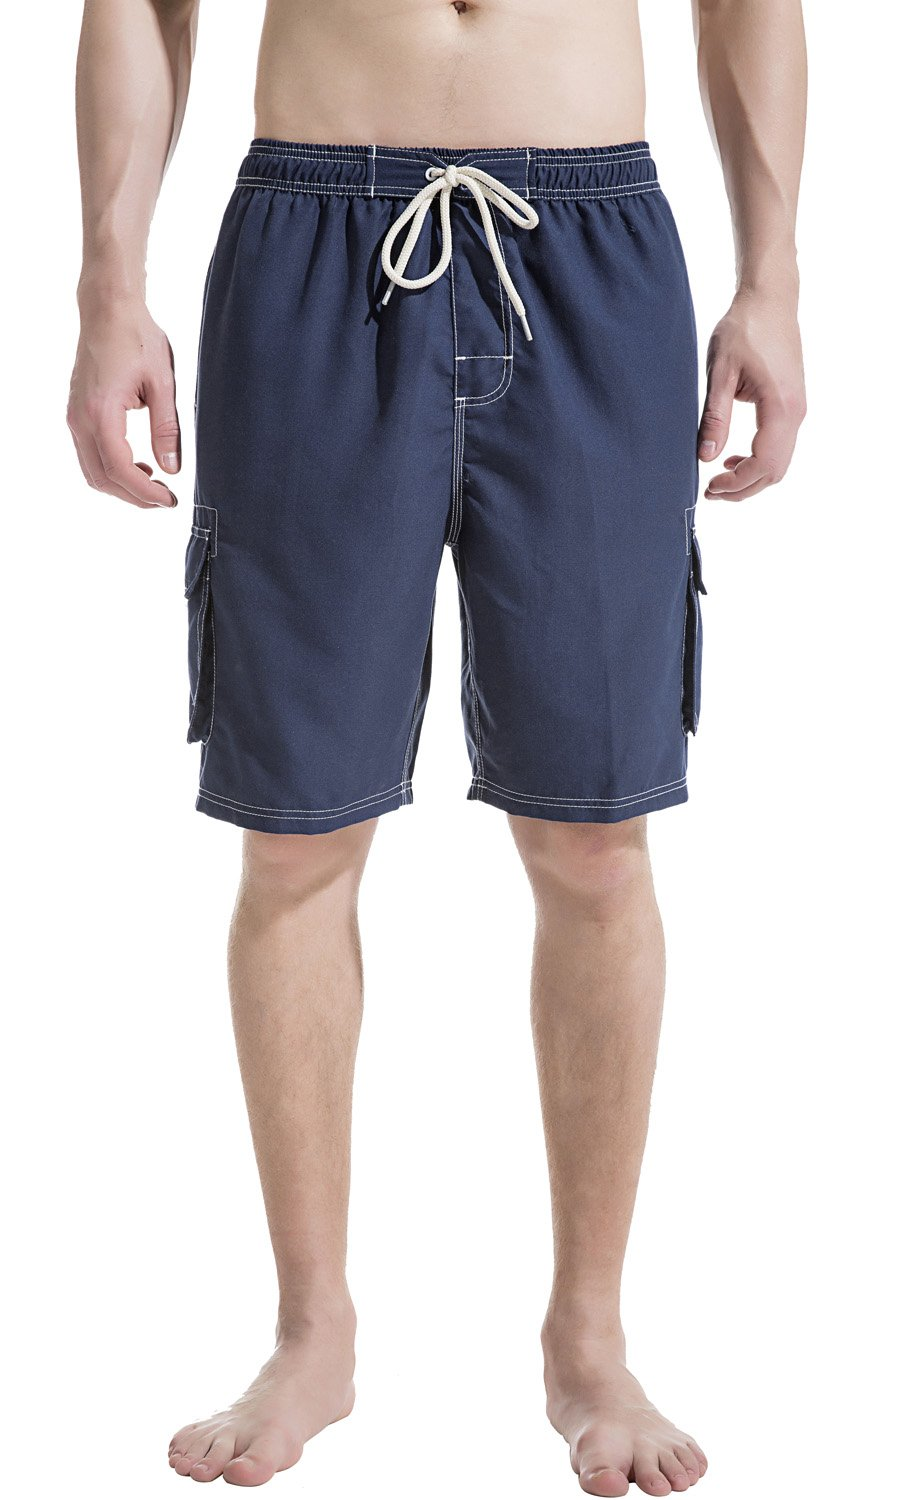 Akula Quick Dry Swim Trunks Beach Shorts with Mesh Lining Surf Board Shorts Navy Size L